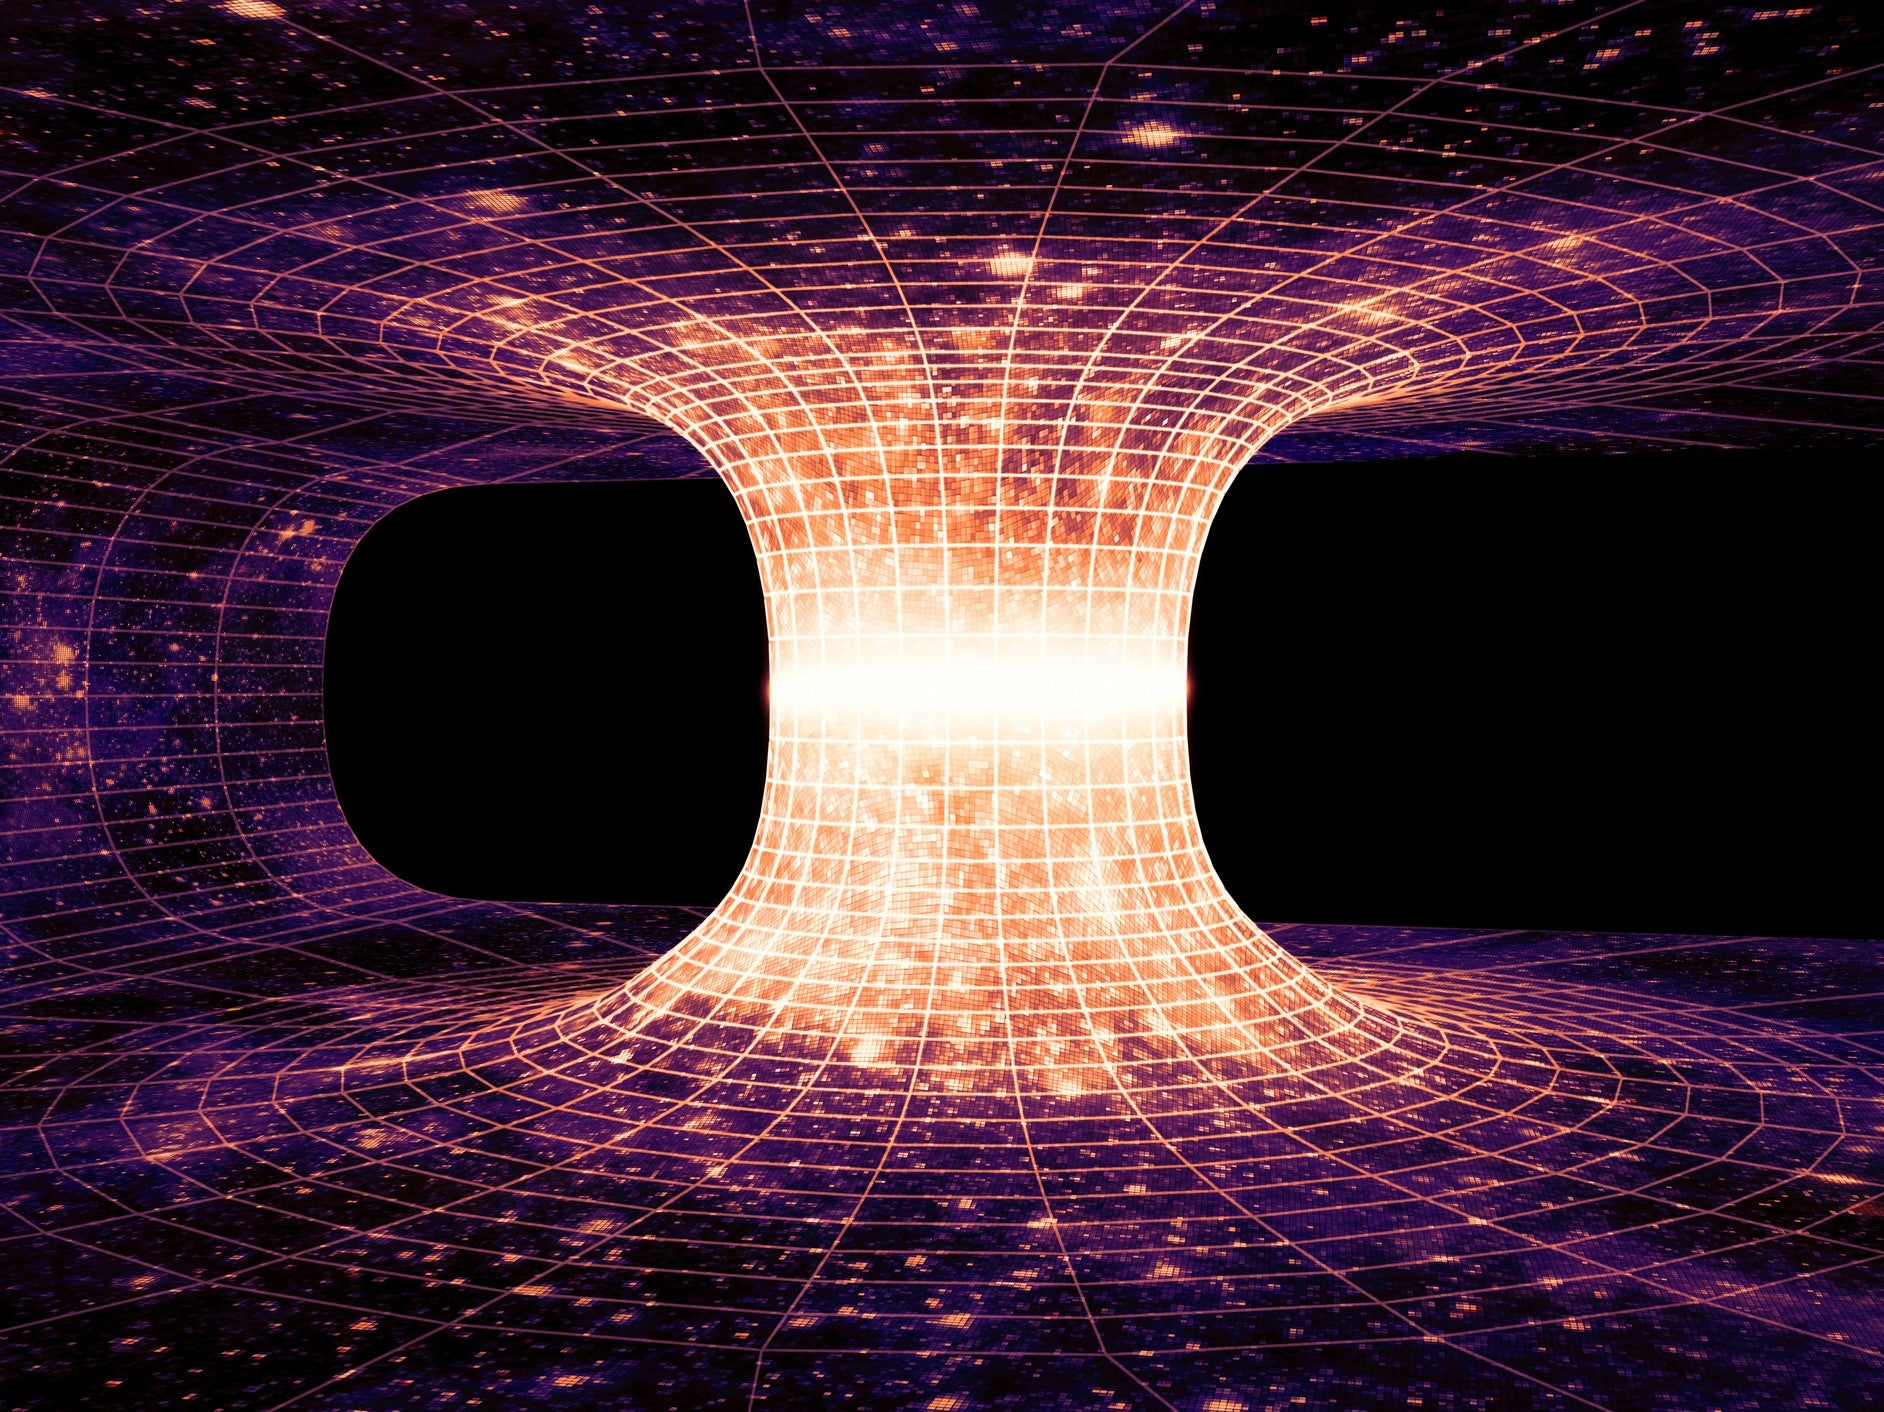 Physicists prove time travel is 'mathematically possible' | The Independent